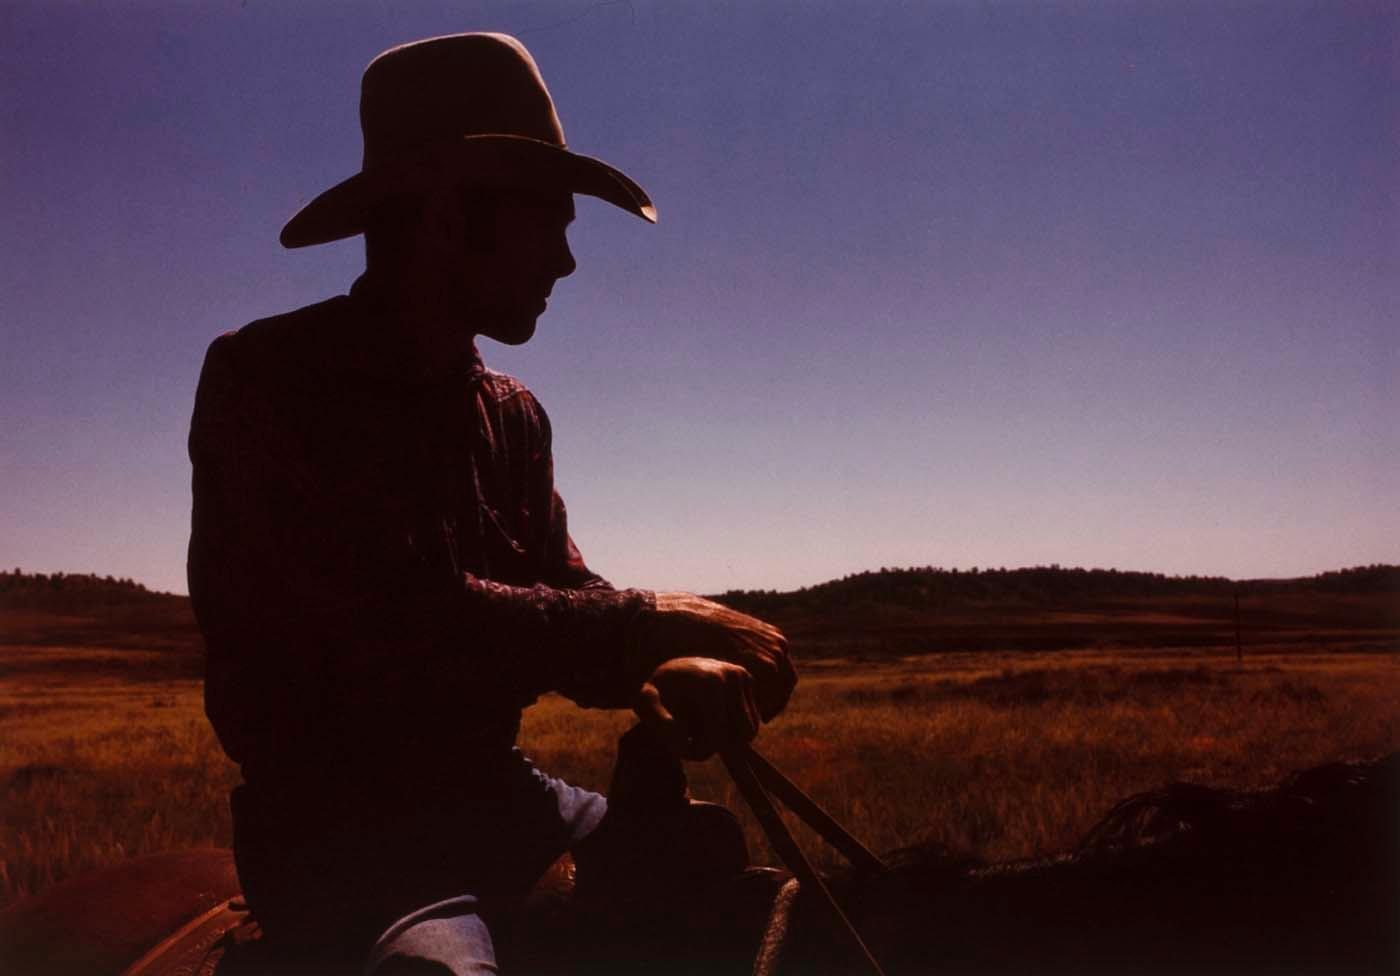 Kaycee Cowboy, from the Wyoming Documentary Survey Project, 1979 by Penny Diane Wolin | WahooArt.com